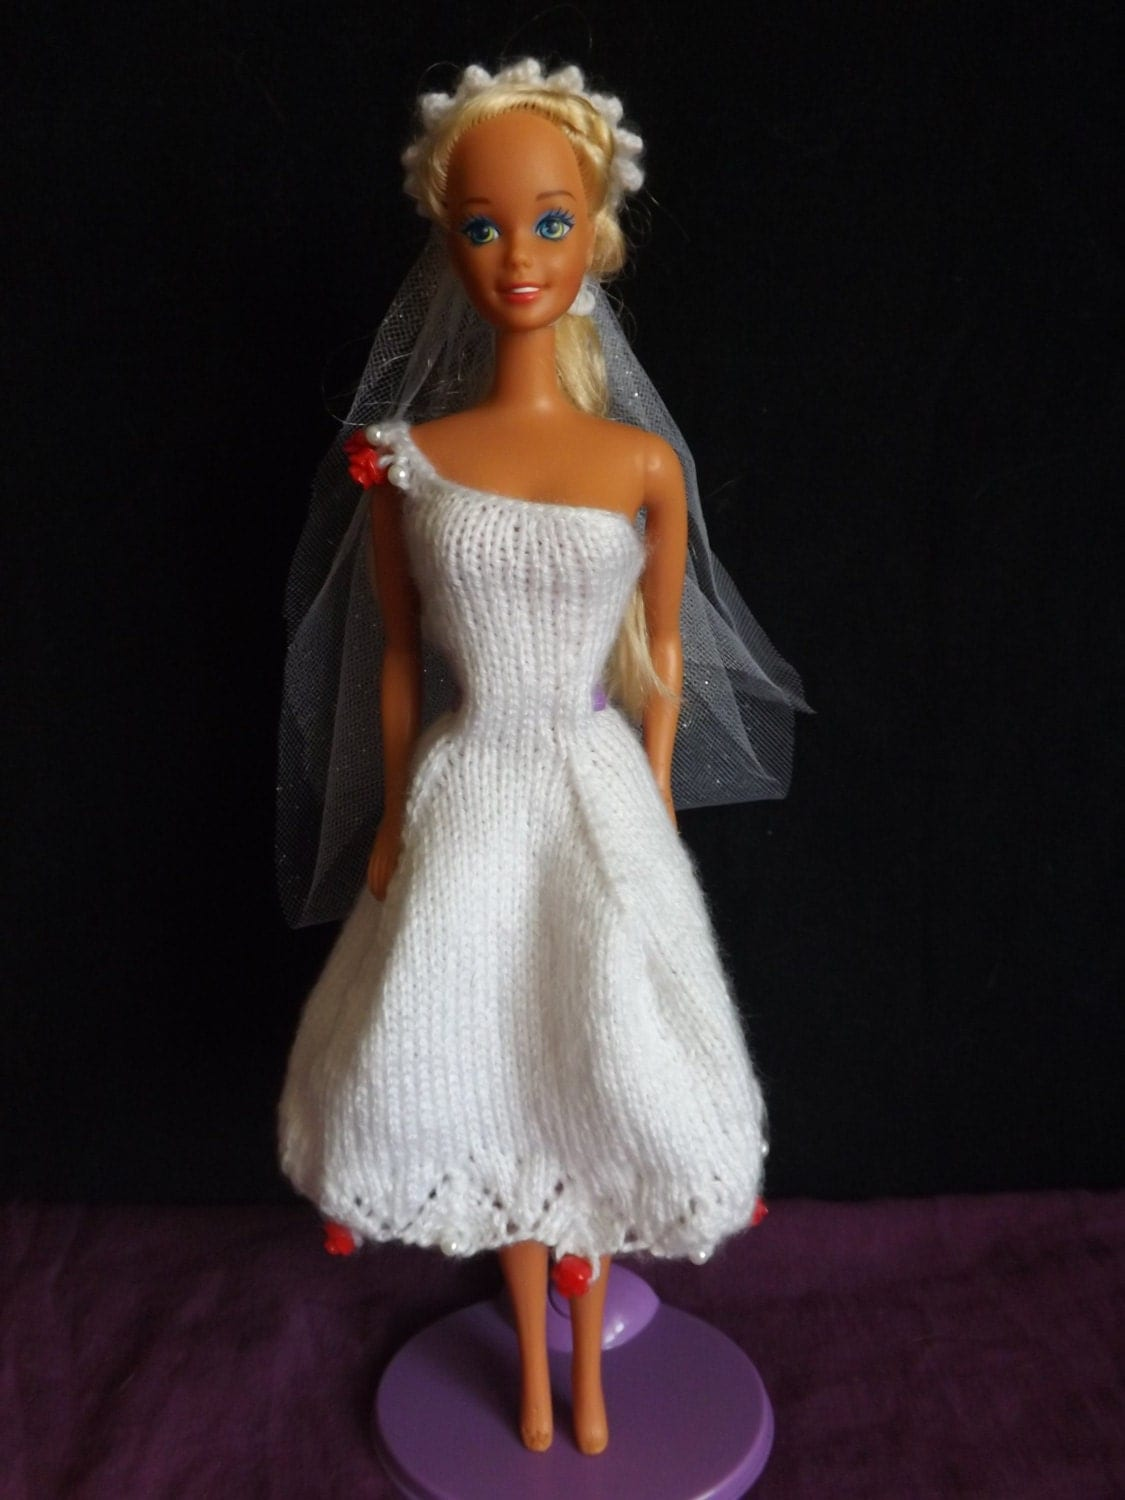 Knitting Clothes For Barbie Dolls : Knit barbie clothes dress by theyarnoverproject